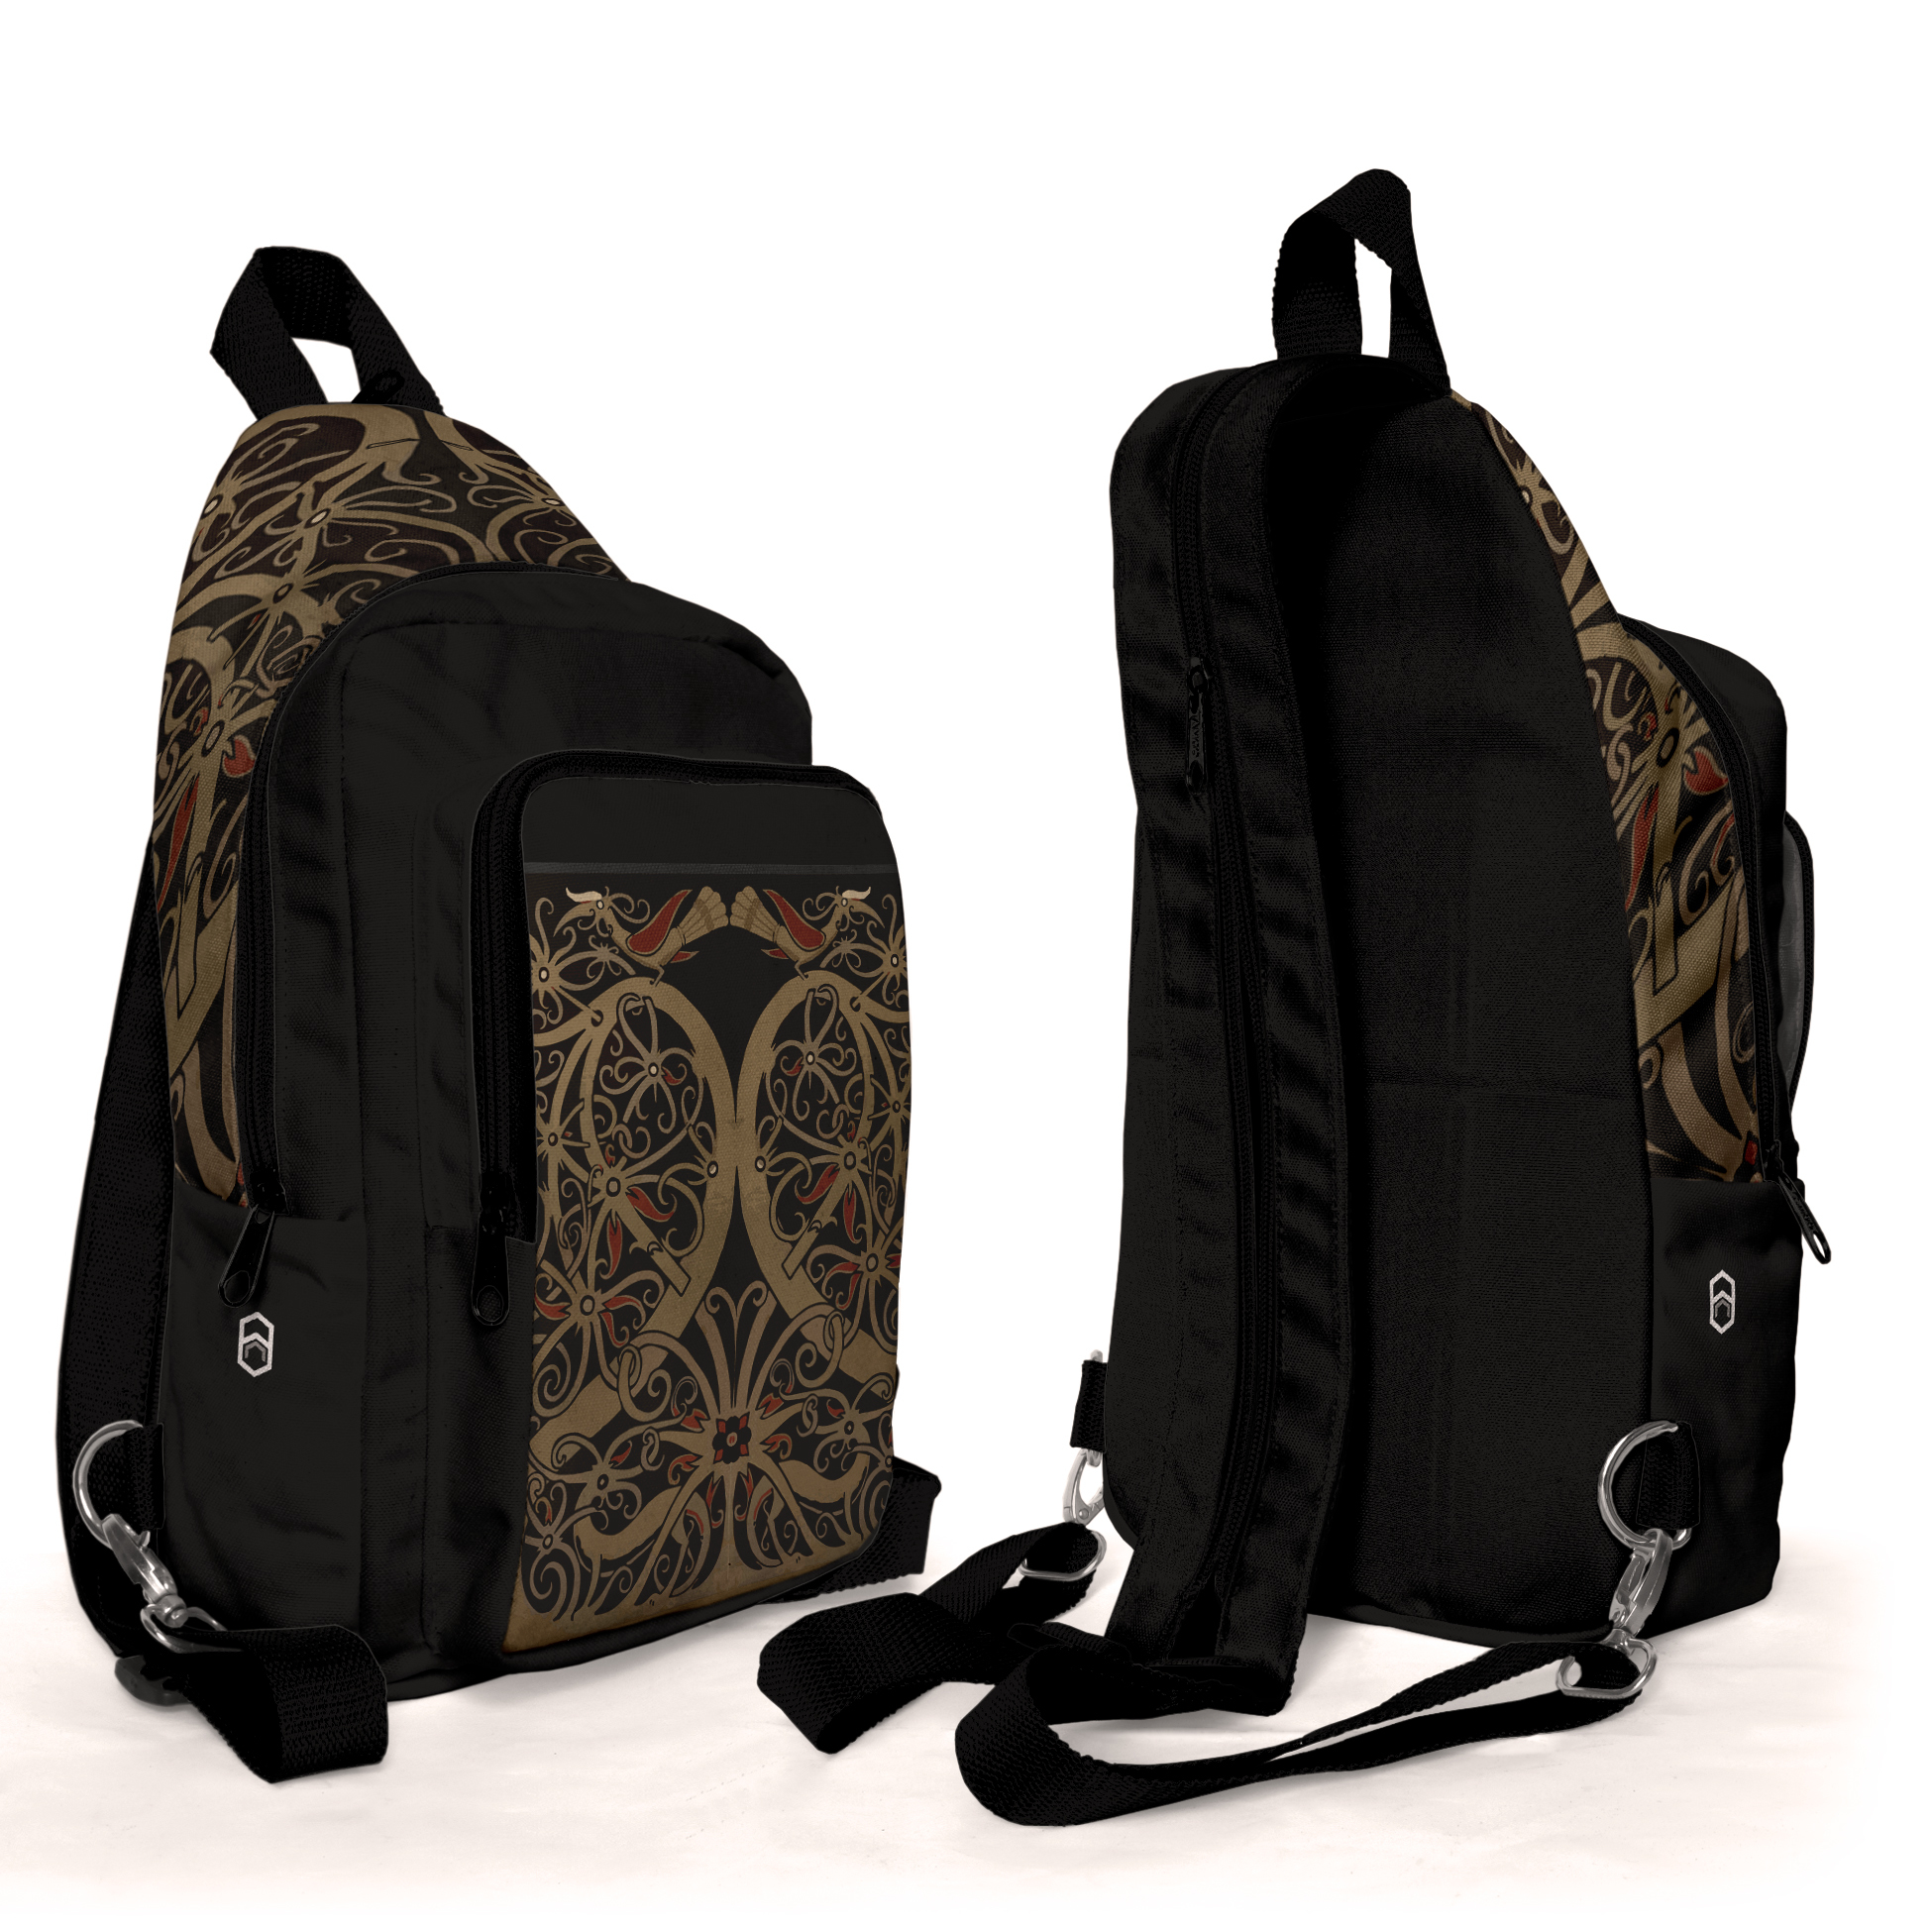 Tingang Betentang sling backpack.jpg